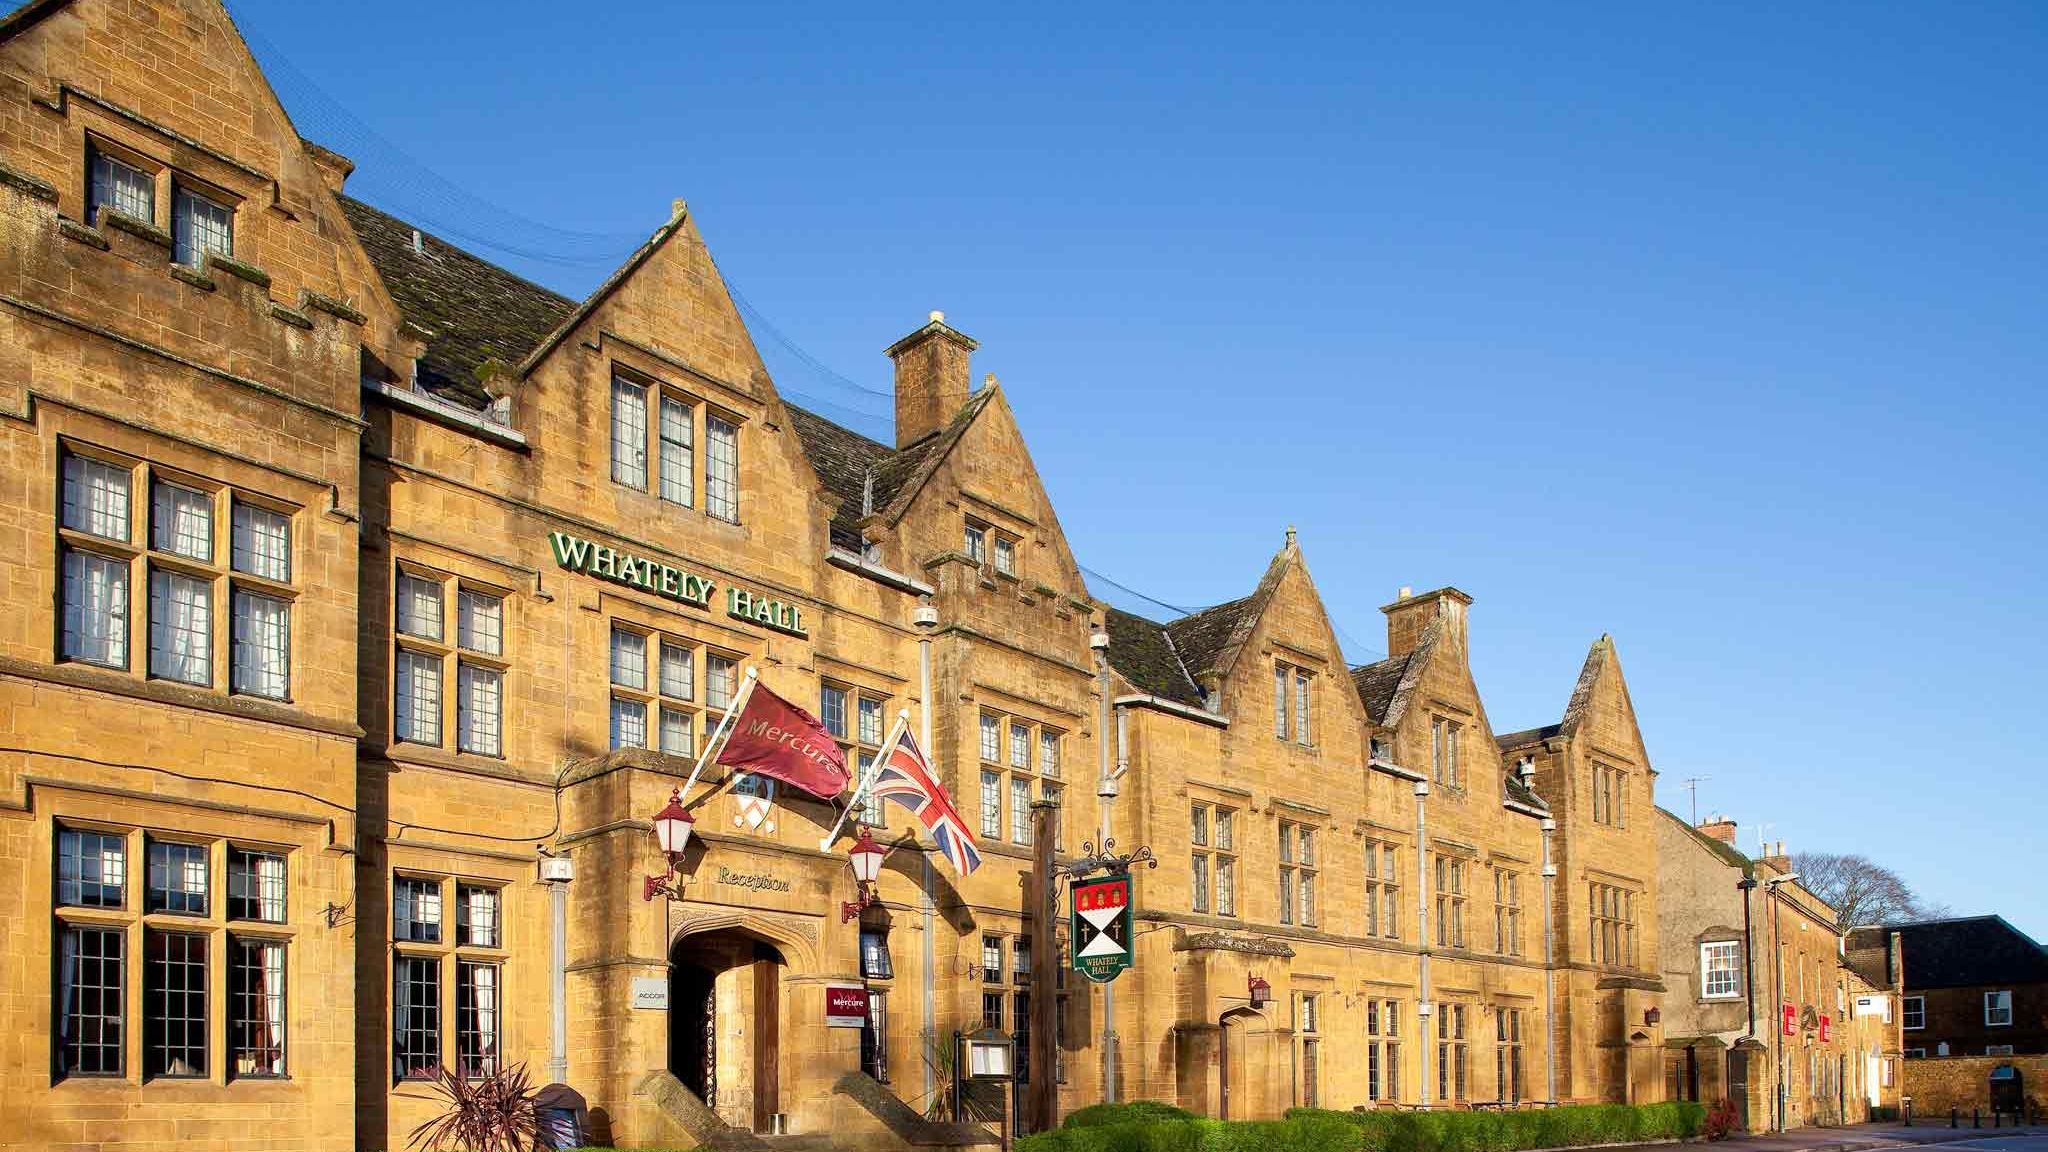 Whately Hall Hotel Banbury - 23rd December 2019 4nts CHRISTMAS BRIDGE HOLIDAY